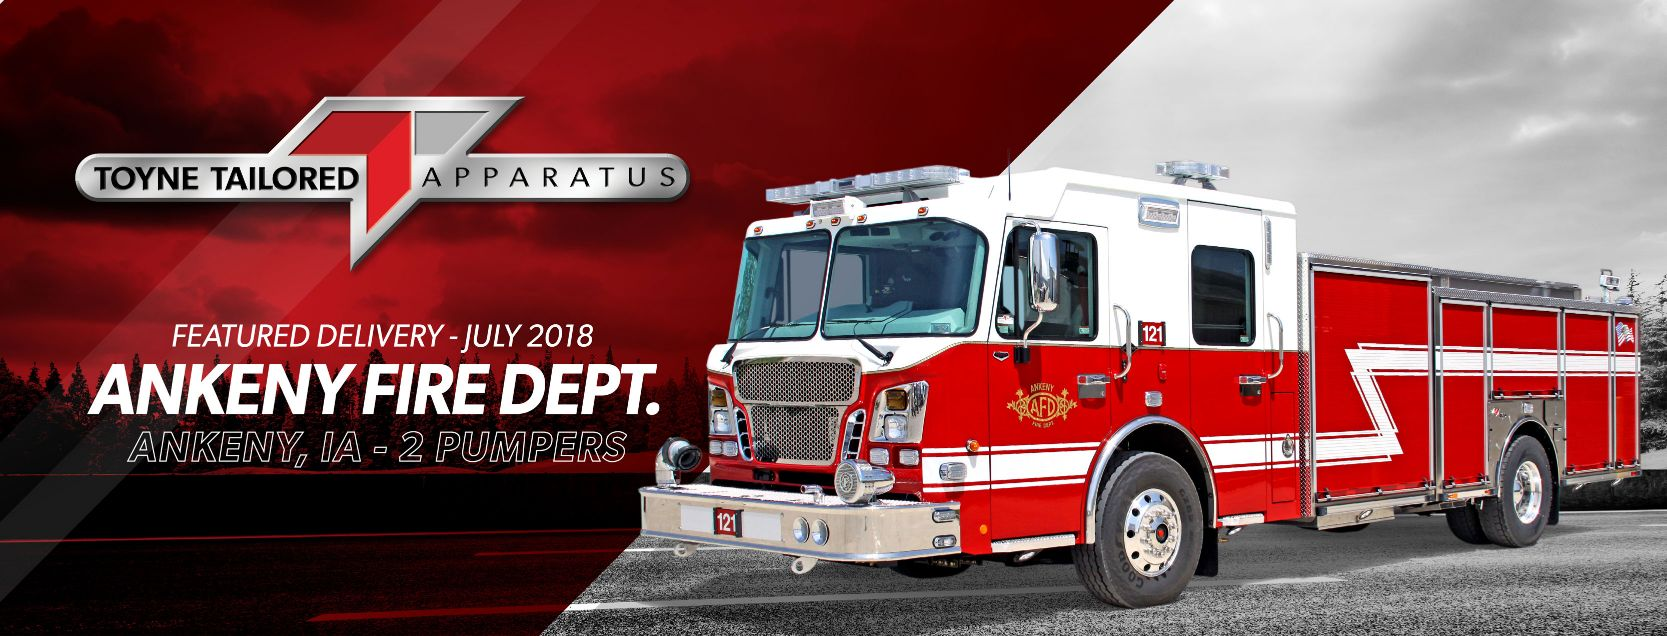 Featured Delivery Ankeny Fire Department